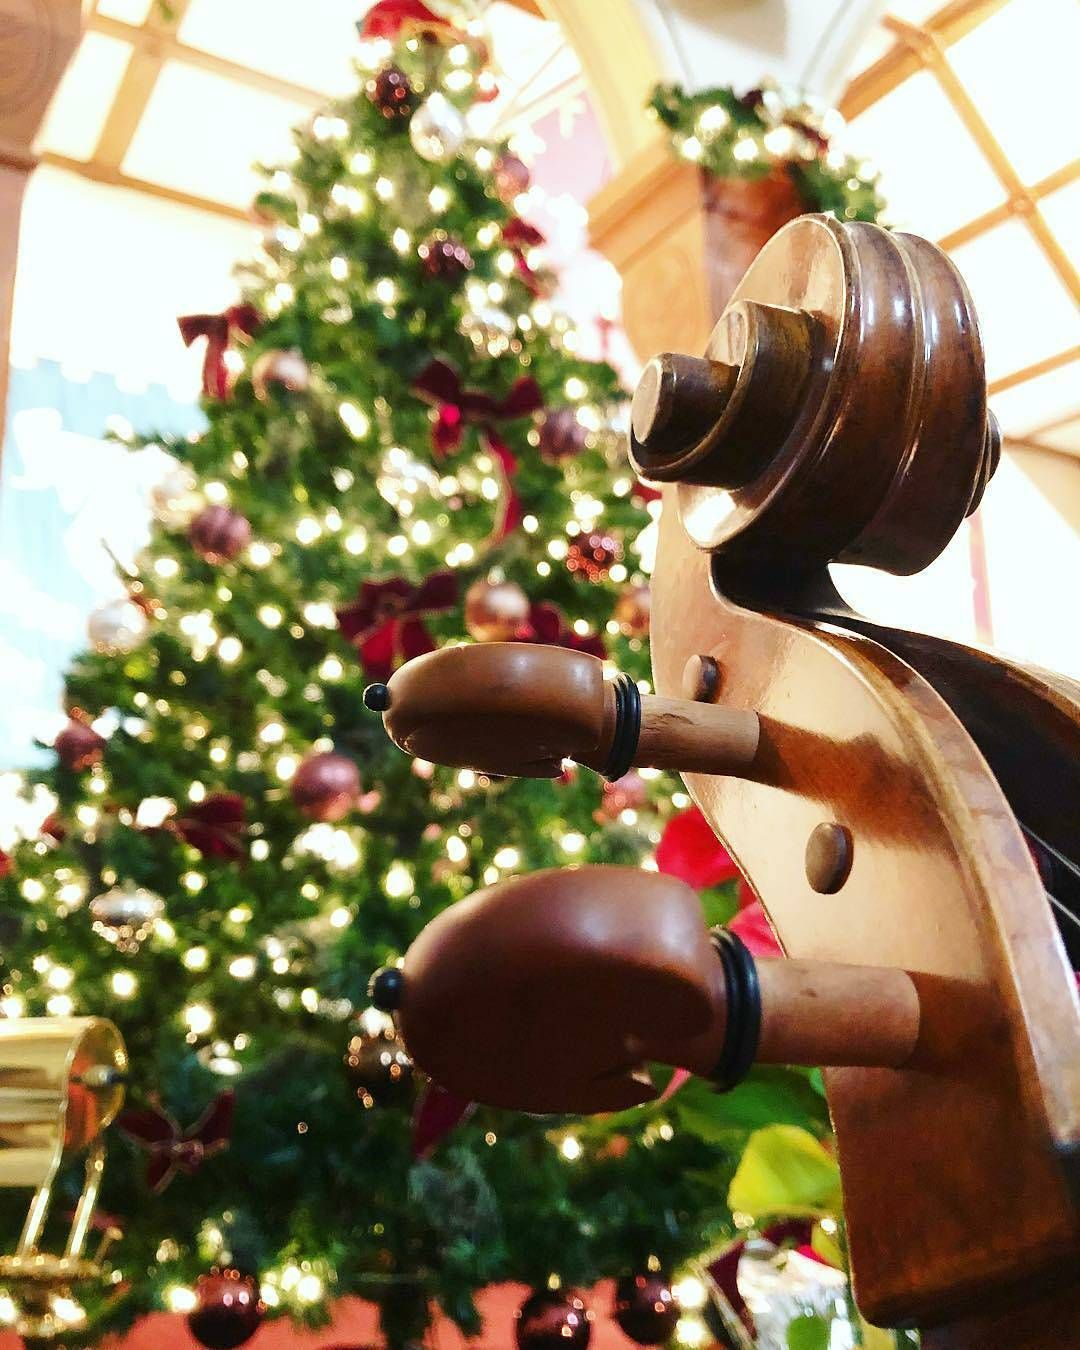 Cello And A Christmas Tree Cellistoftheworld On Instagram Pic Christmas By Neonappa21 It S That Christmas Time O Christmas Cheer Cello Christmas Time